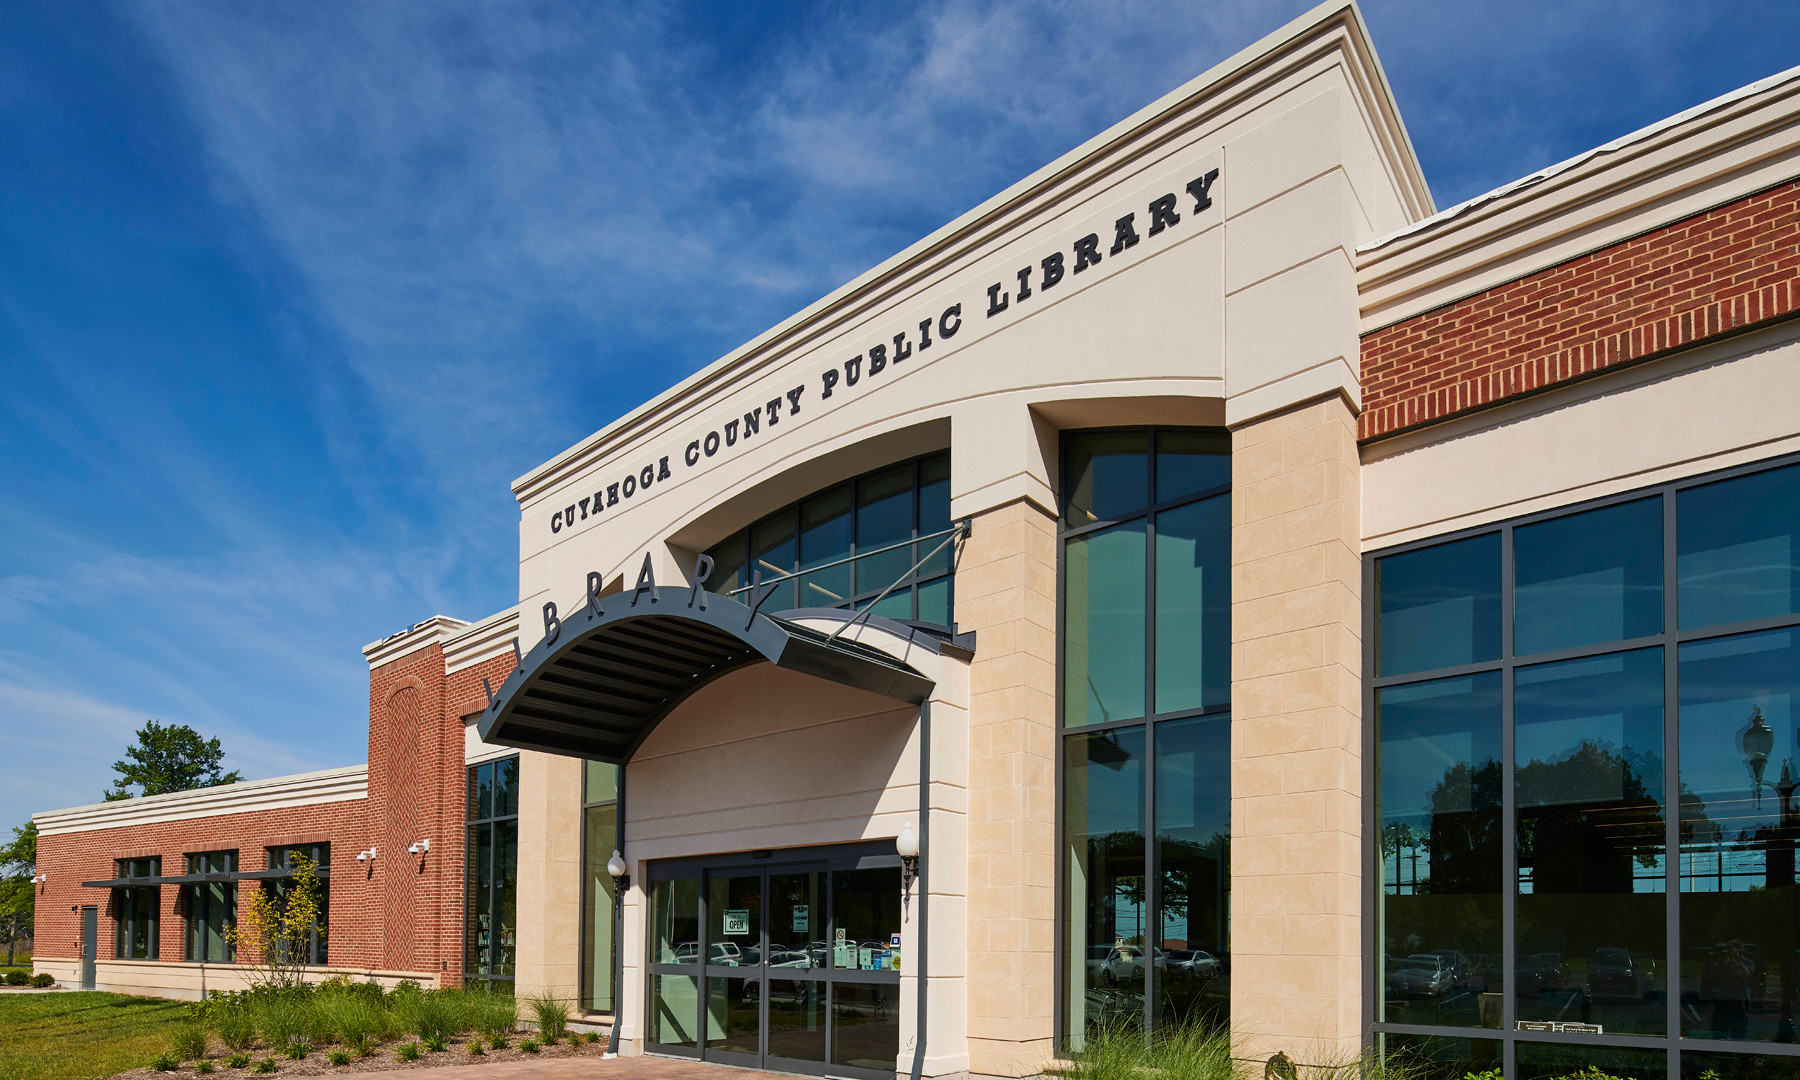 Middleburg Heights Branch Cuyahoga County Public Library